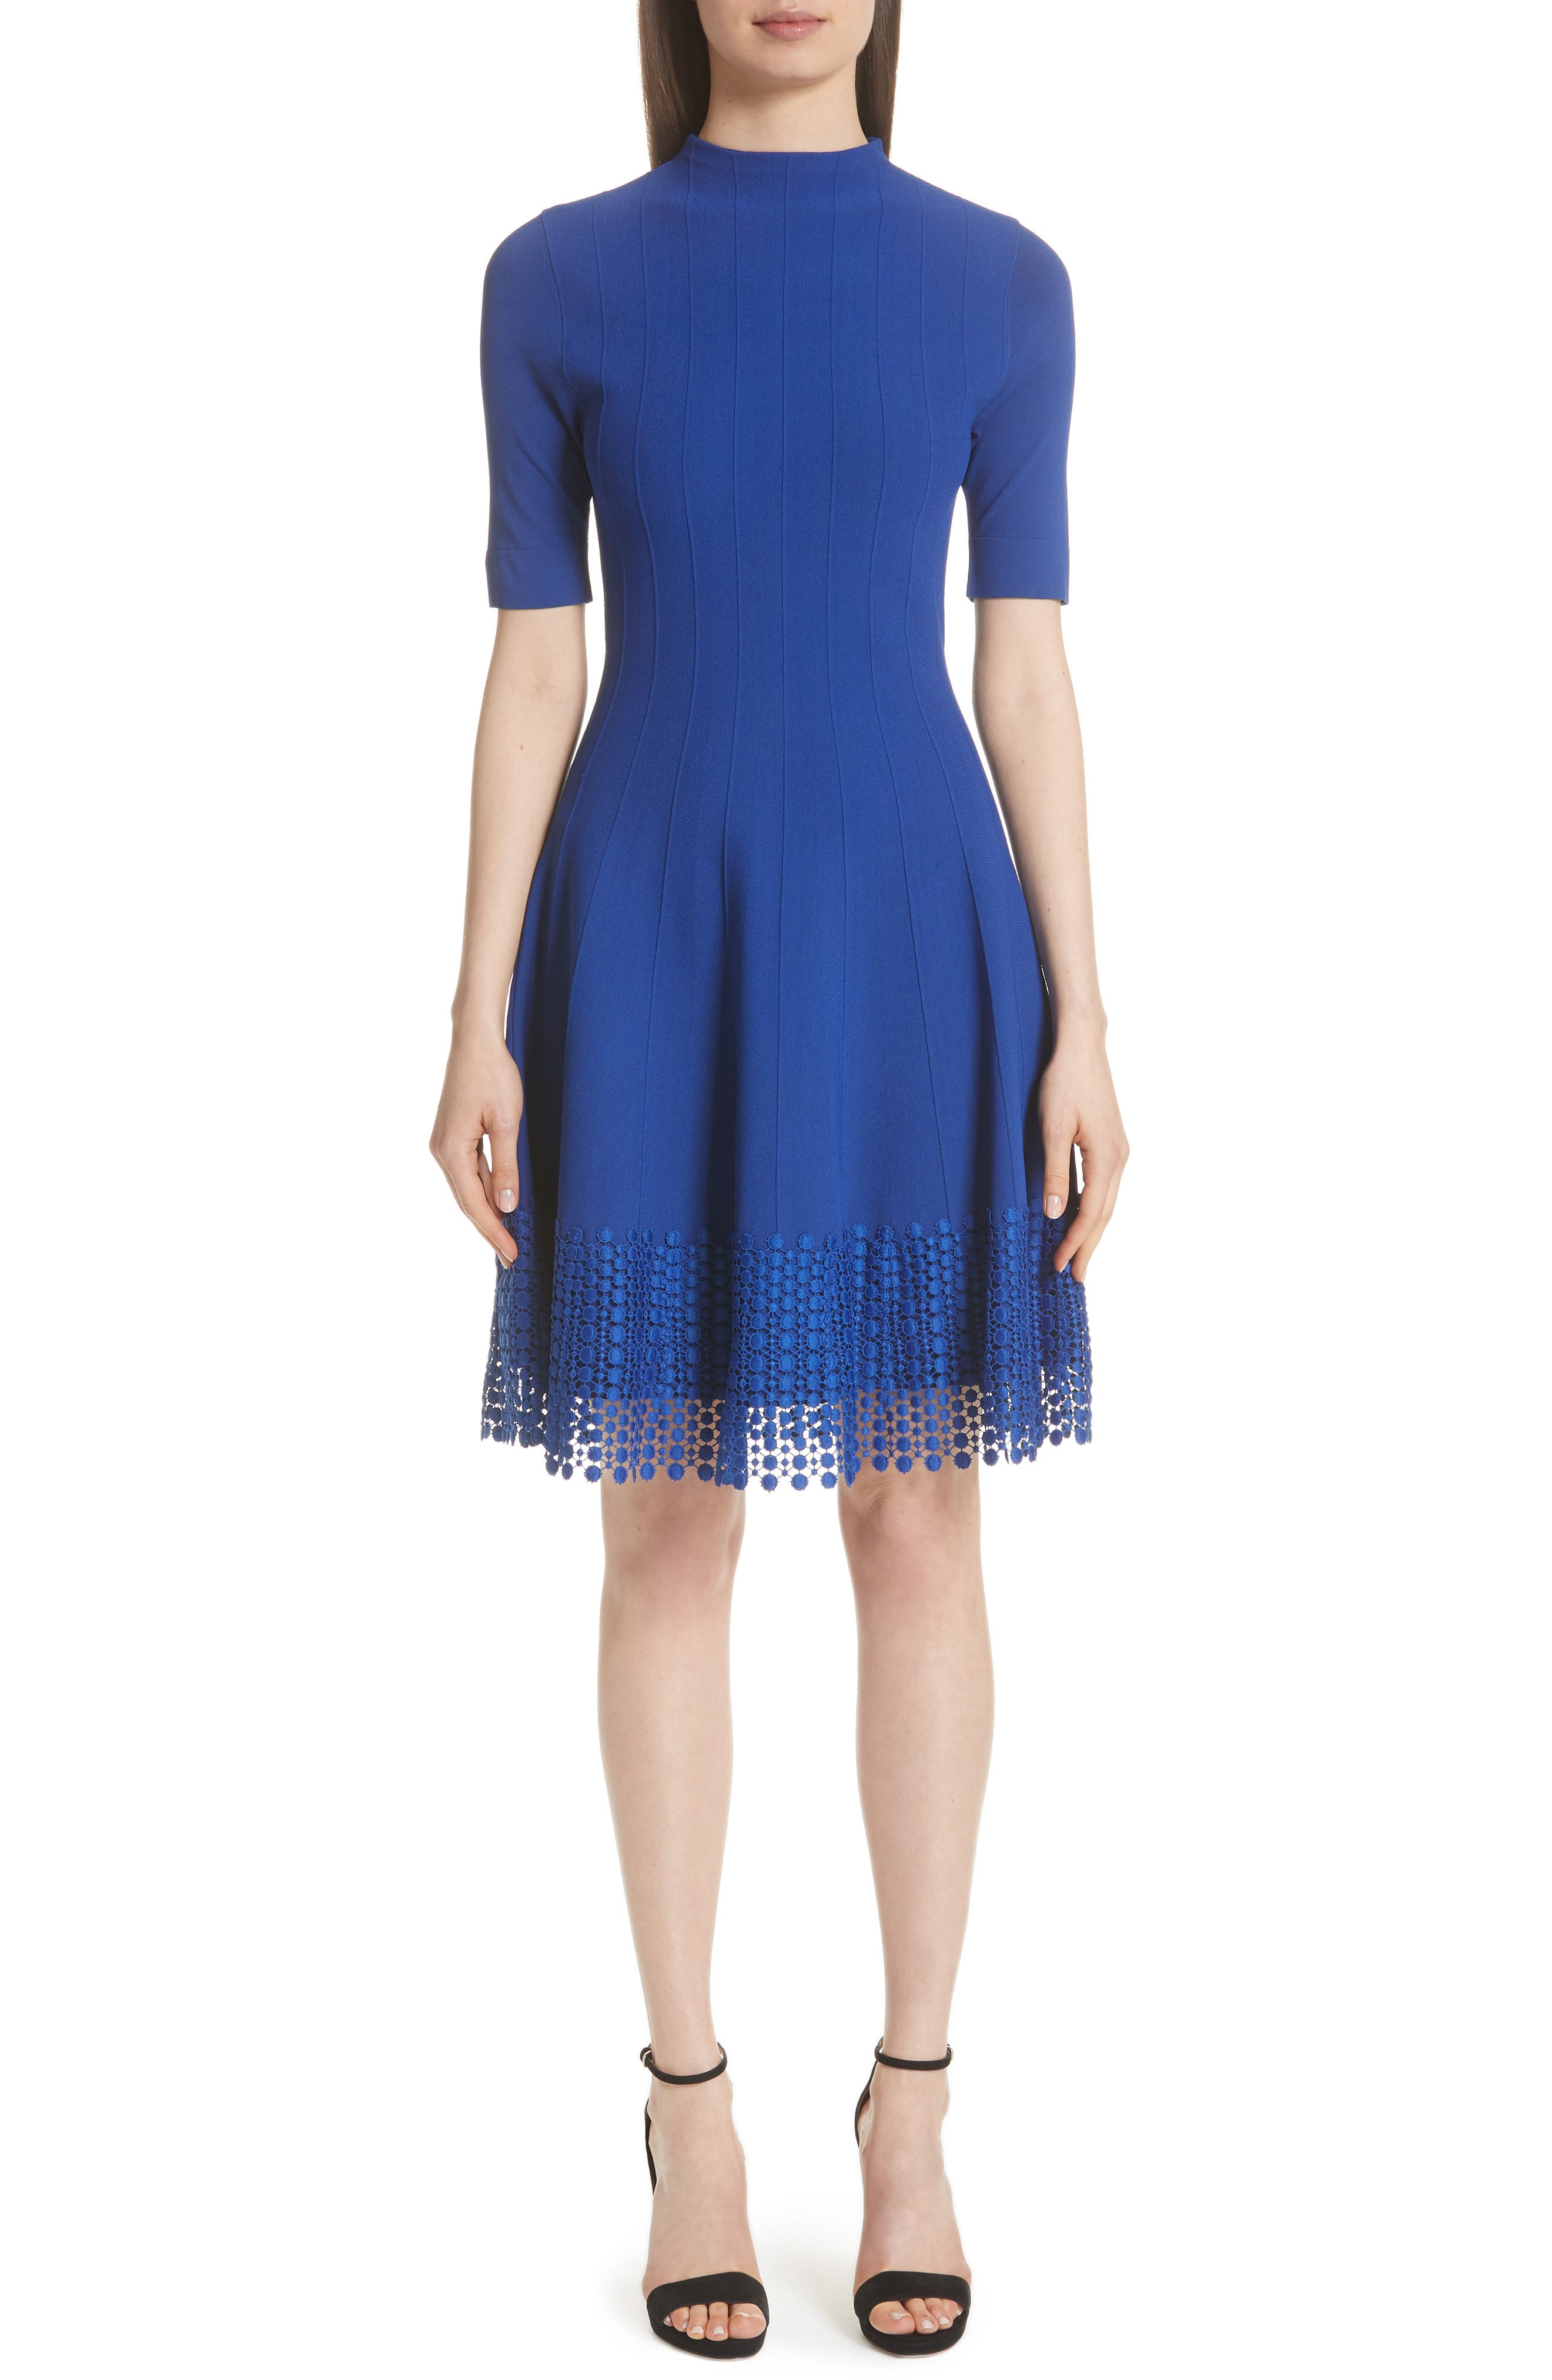 LELA ROSE High-Neck Elbow-Sleeve Fit-And-Flare Knit Dress With Lace Hem in Lapis